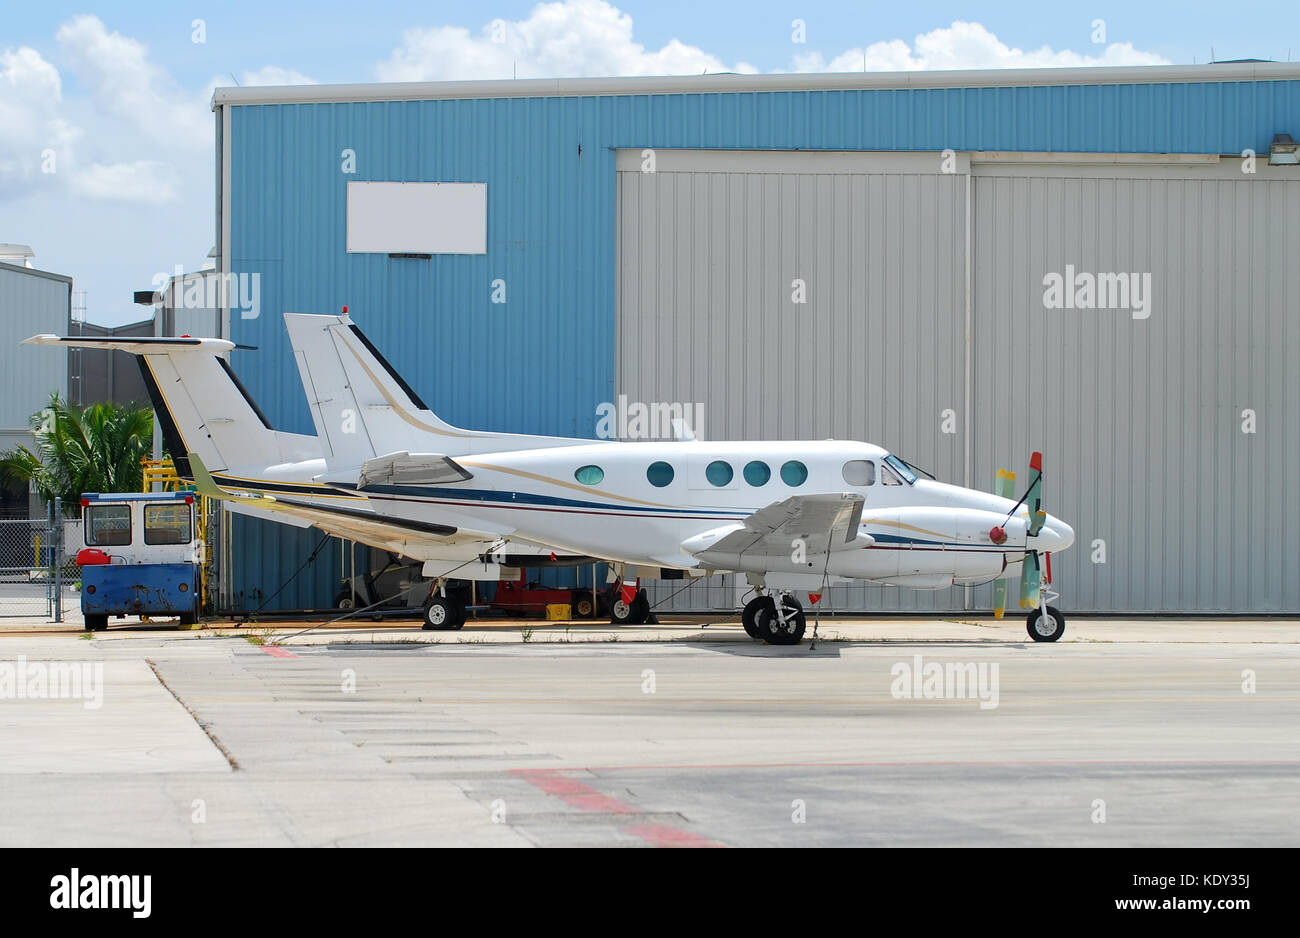 Two turboprop airplanes parked in front of hangar - Stock Image